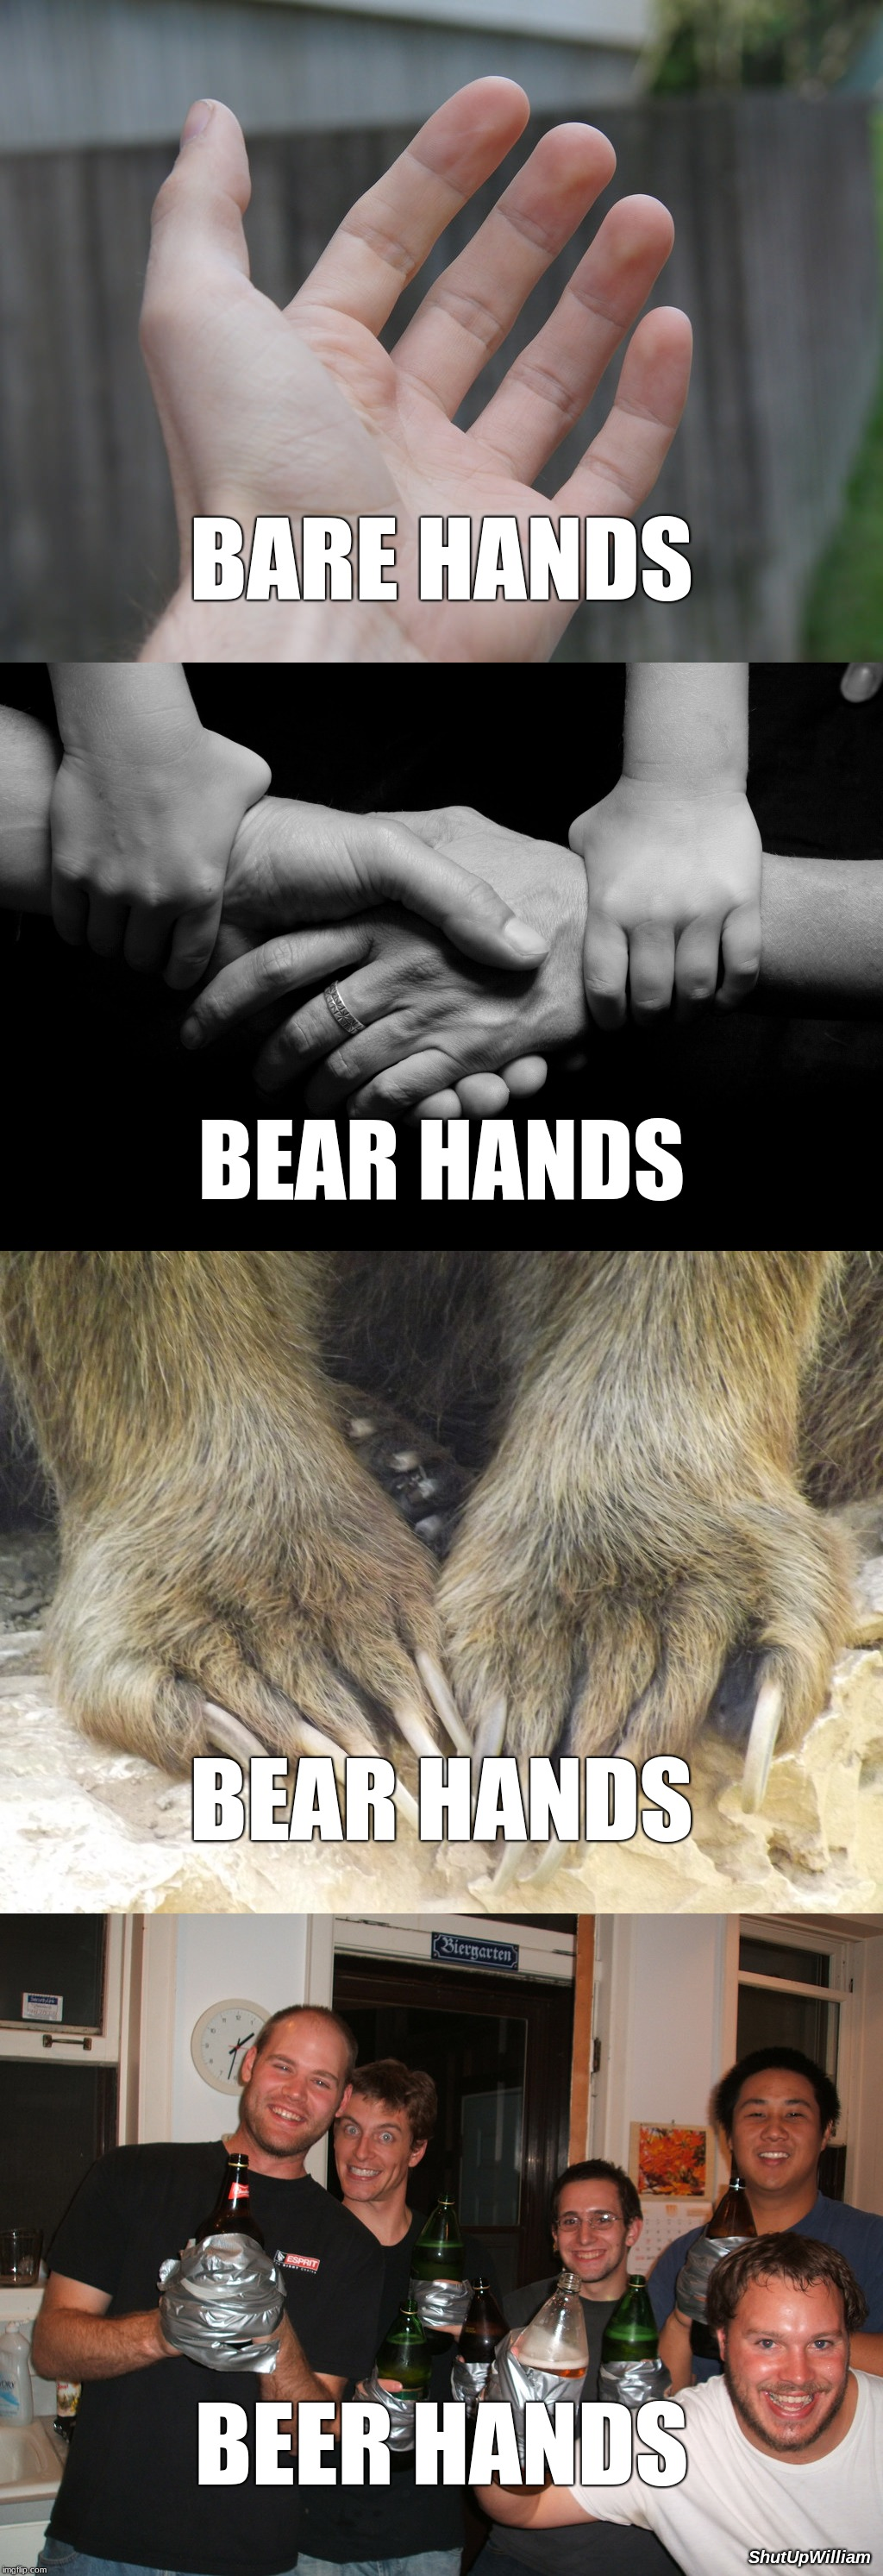 These Hands are Unbearable! | BARE HANDS BEAR HANDS BEAR HANDS BEER HANDS ShutUpWilliam | image tagged in beer,hands,holding hands,hold my beer,the more you know,did you know | made w/ Imgflip meme maker